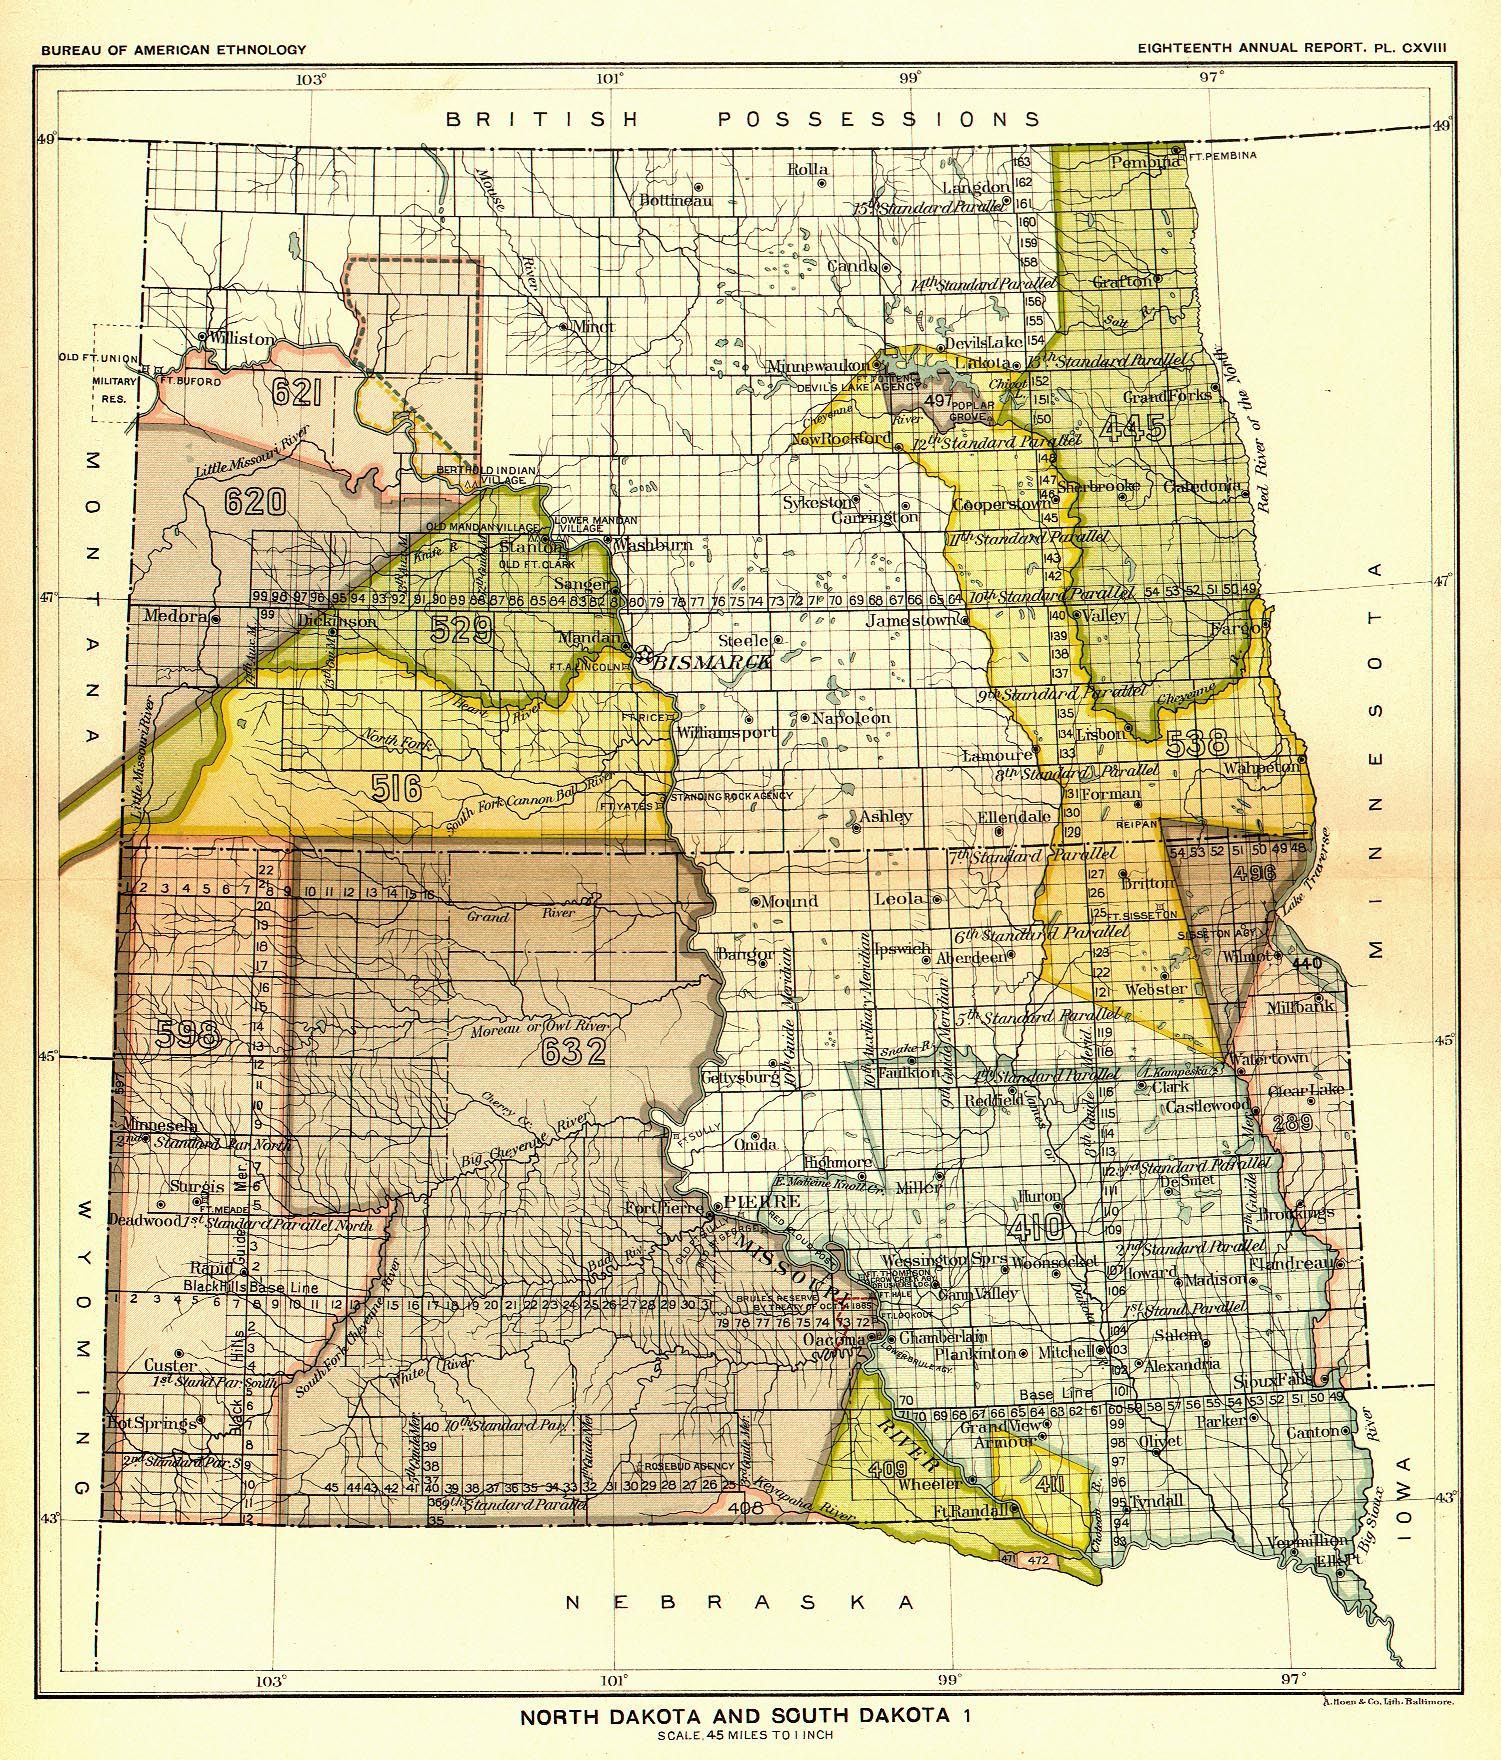 Indian Land Cessions in the U. S., North Dakota and South Dakota 1 ...